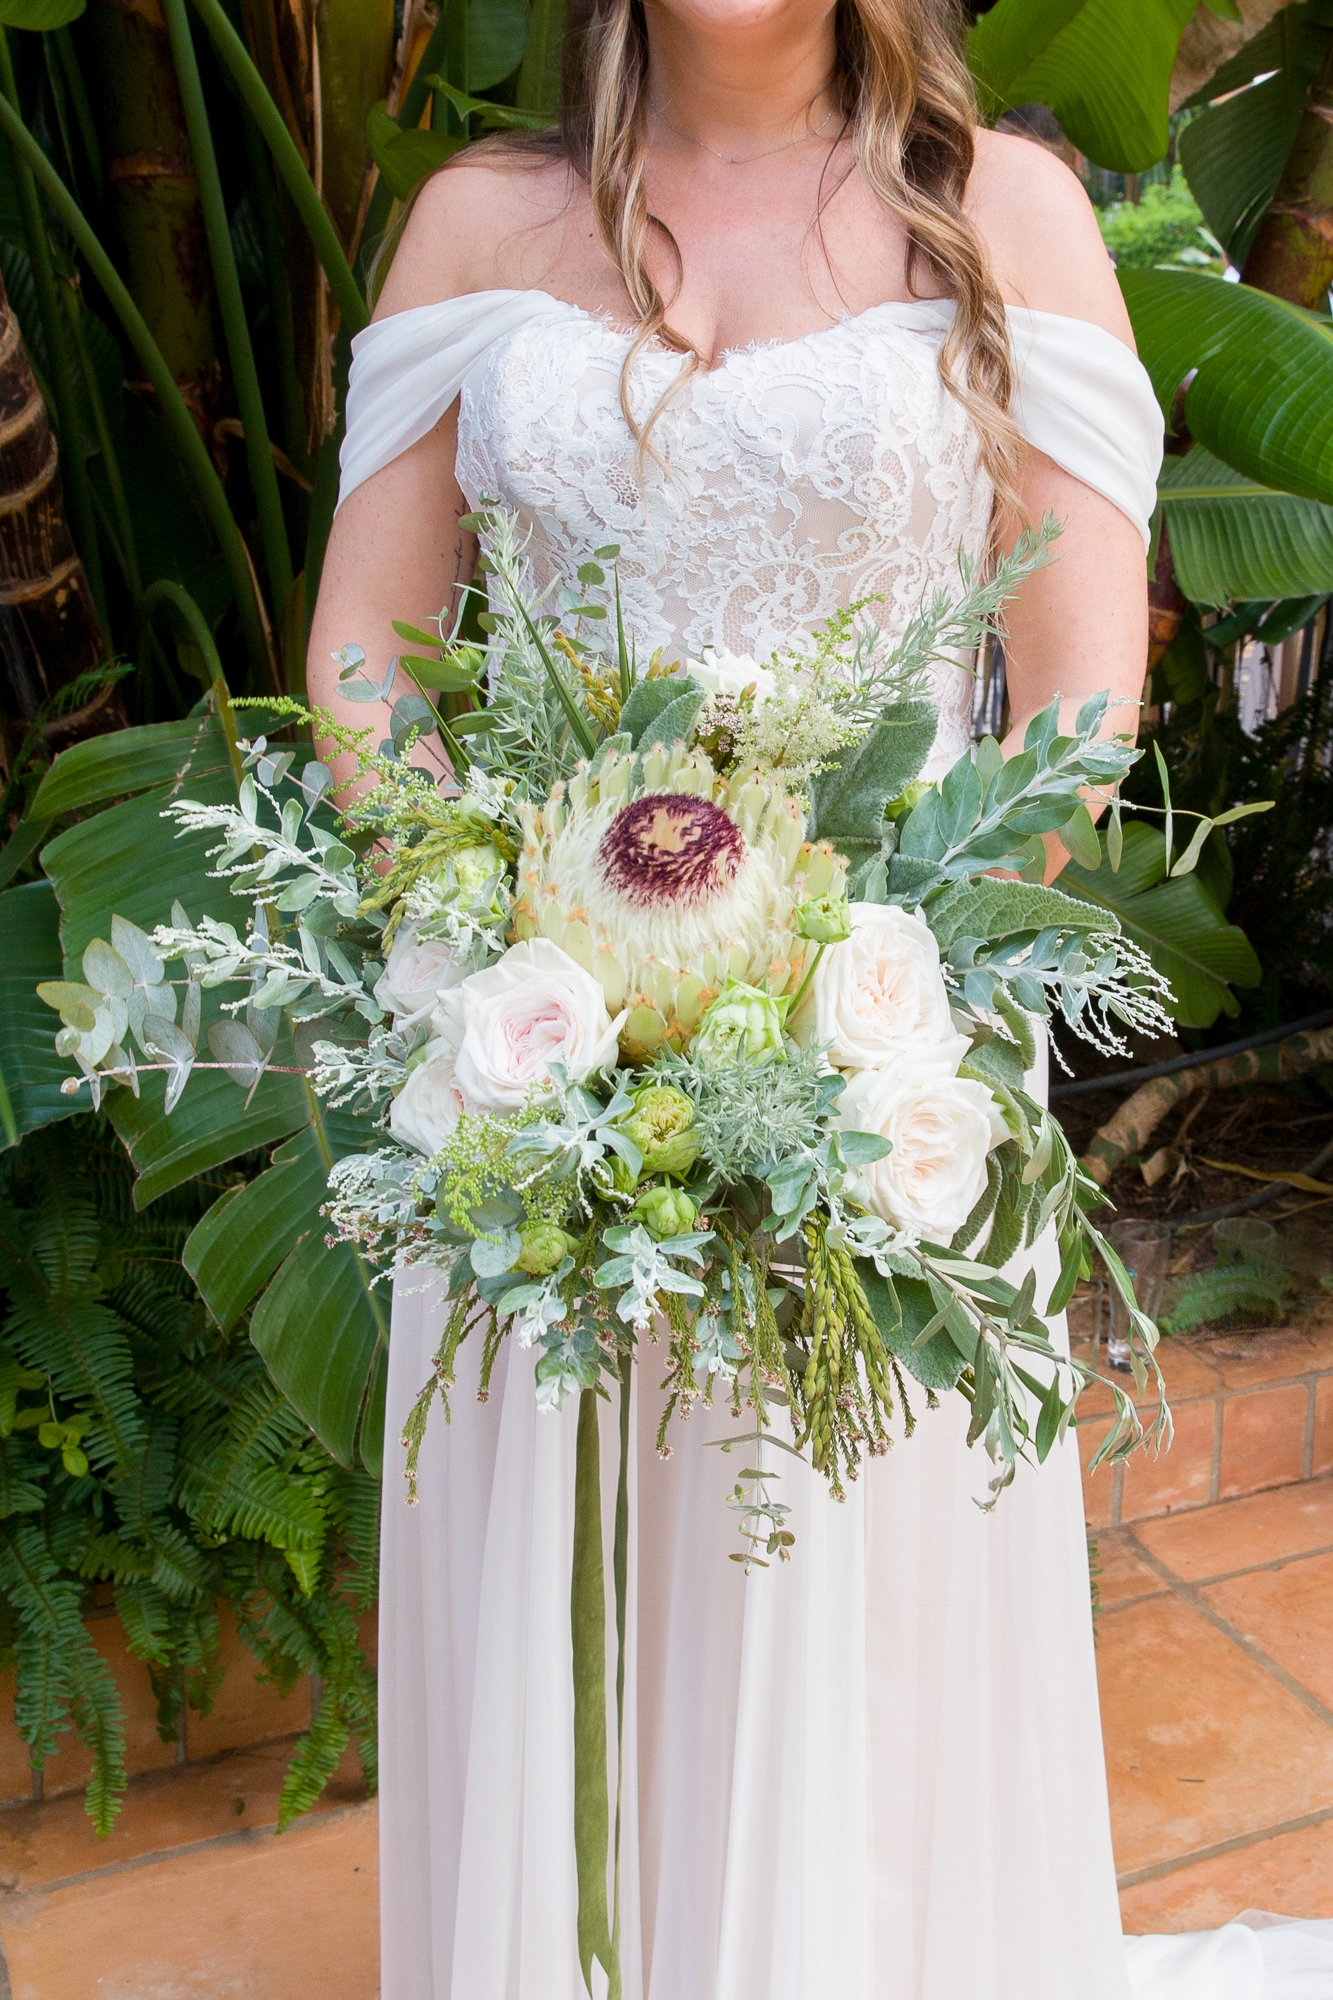 white wedding bouquet by La Toscana in Denia